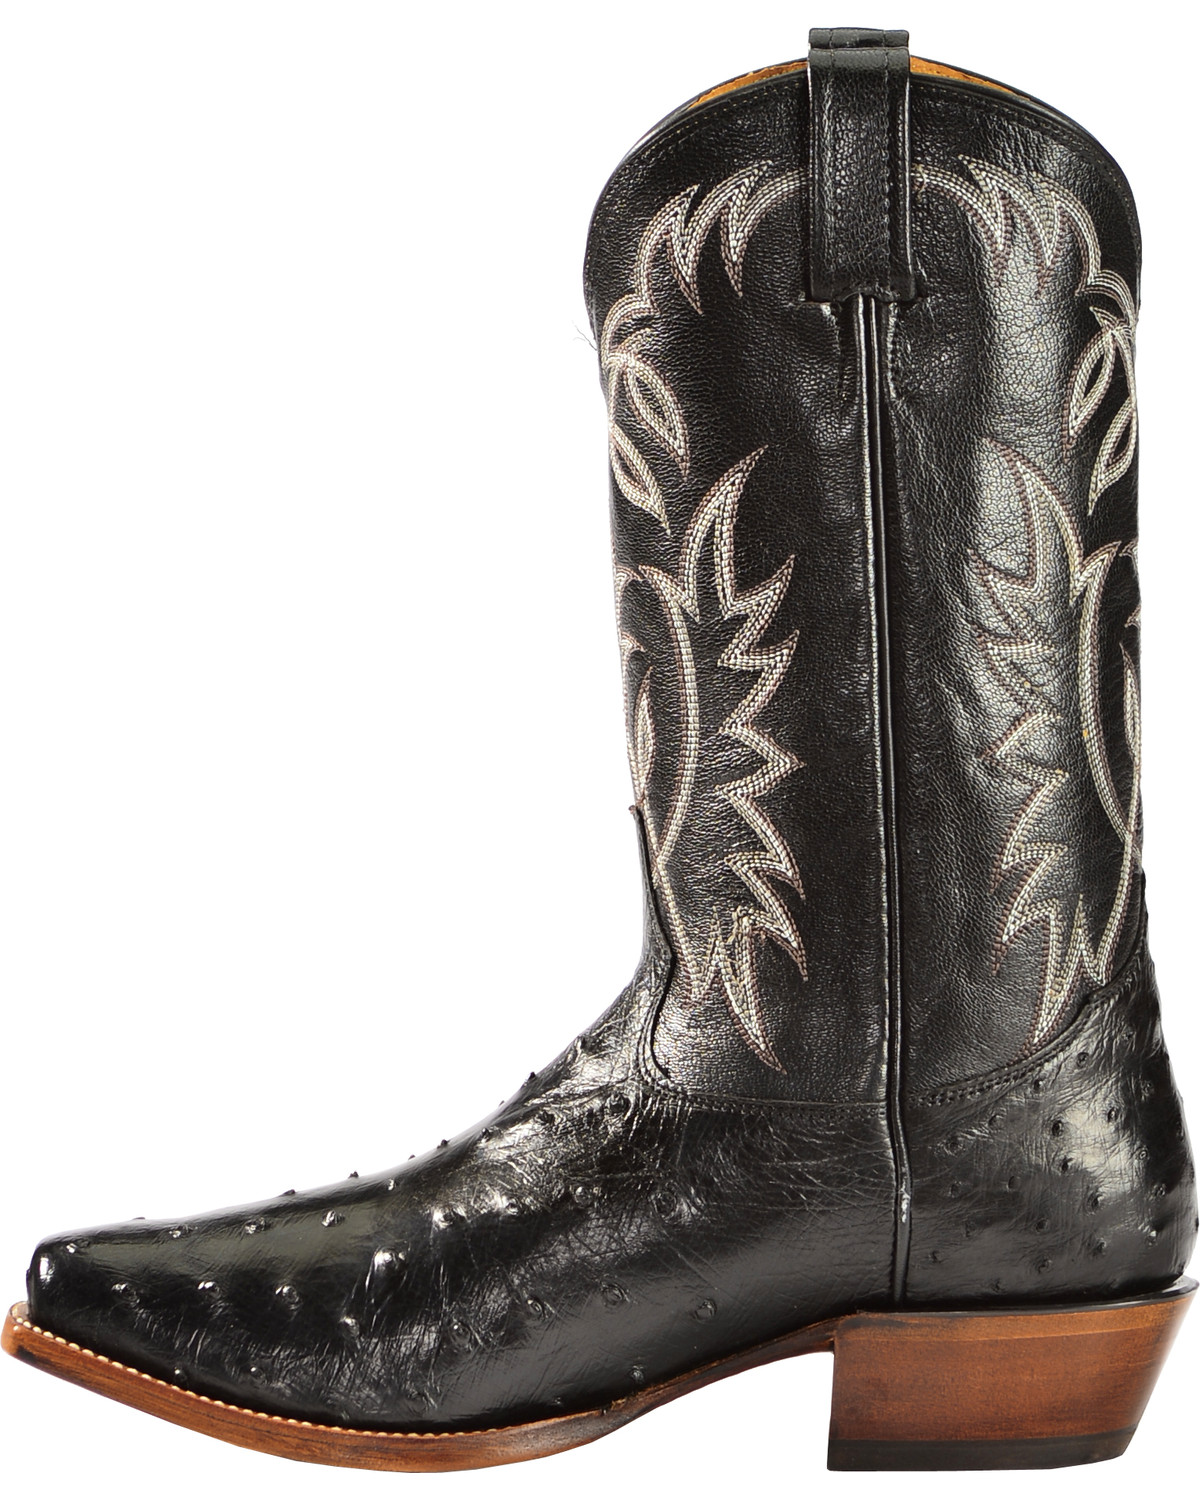 Tony Lama Full Quill Ostrich Cowboy Boots Square Toe